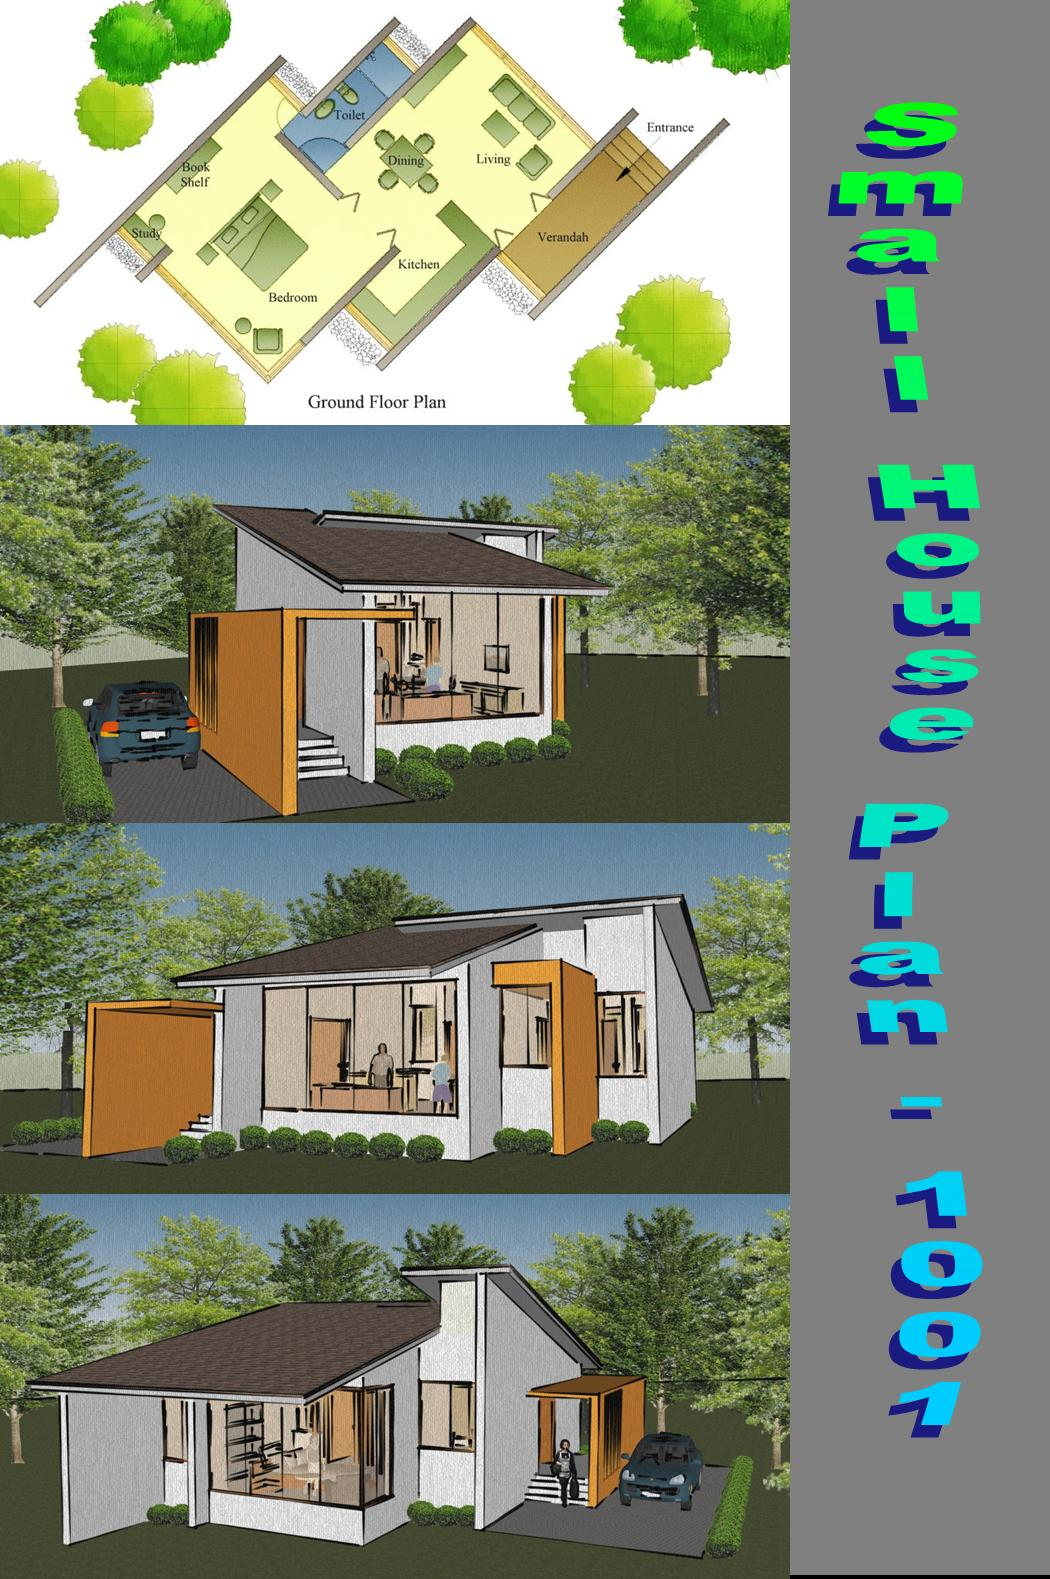 Home plans in india 5 best small home plans from for Small bungalow house plans in india